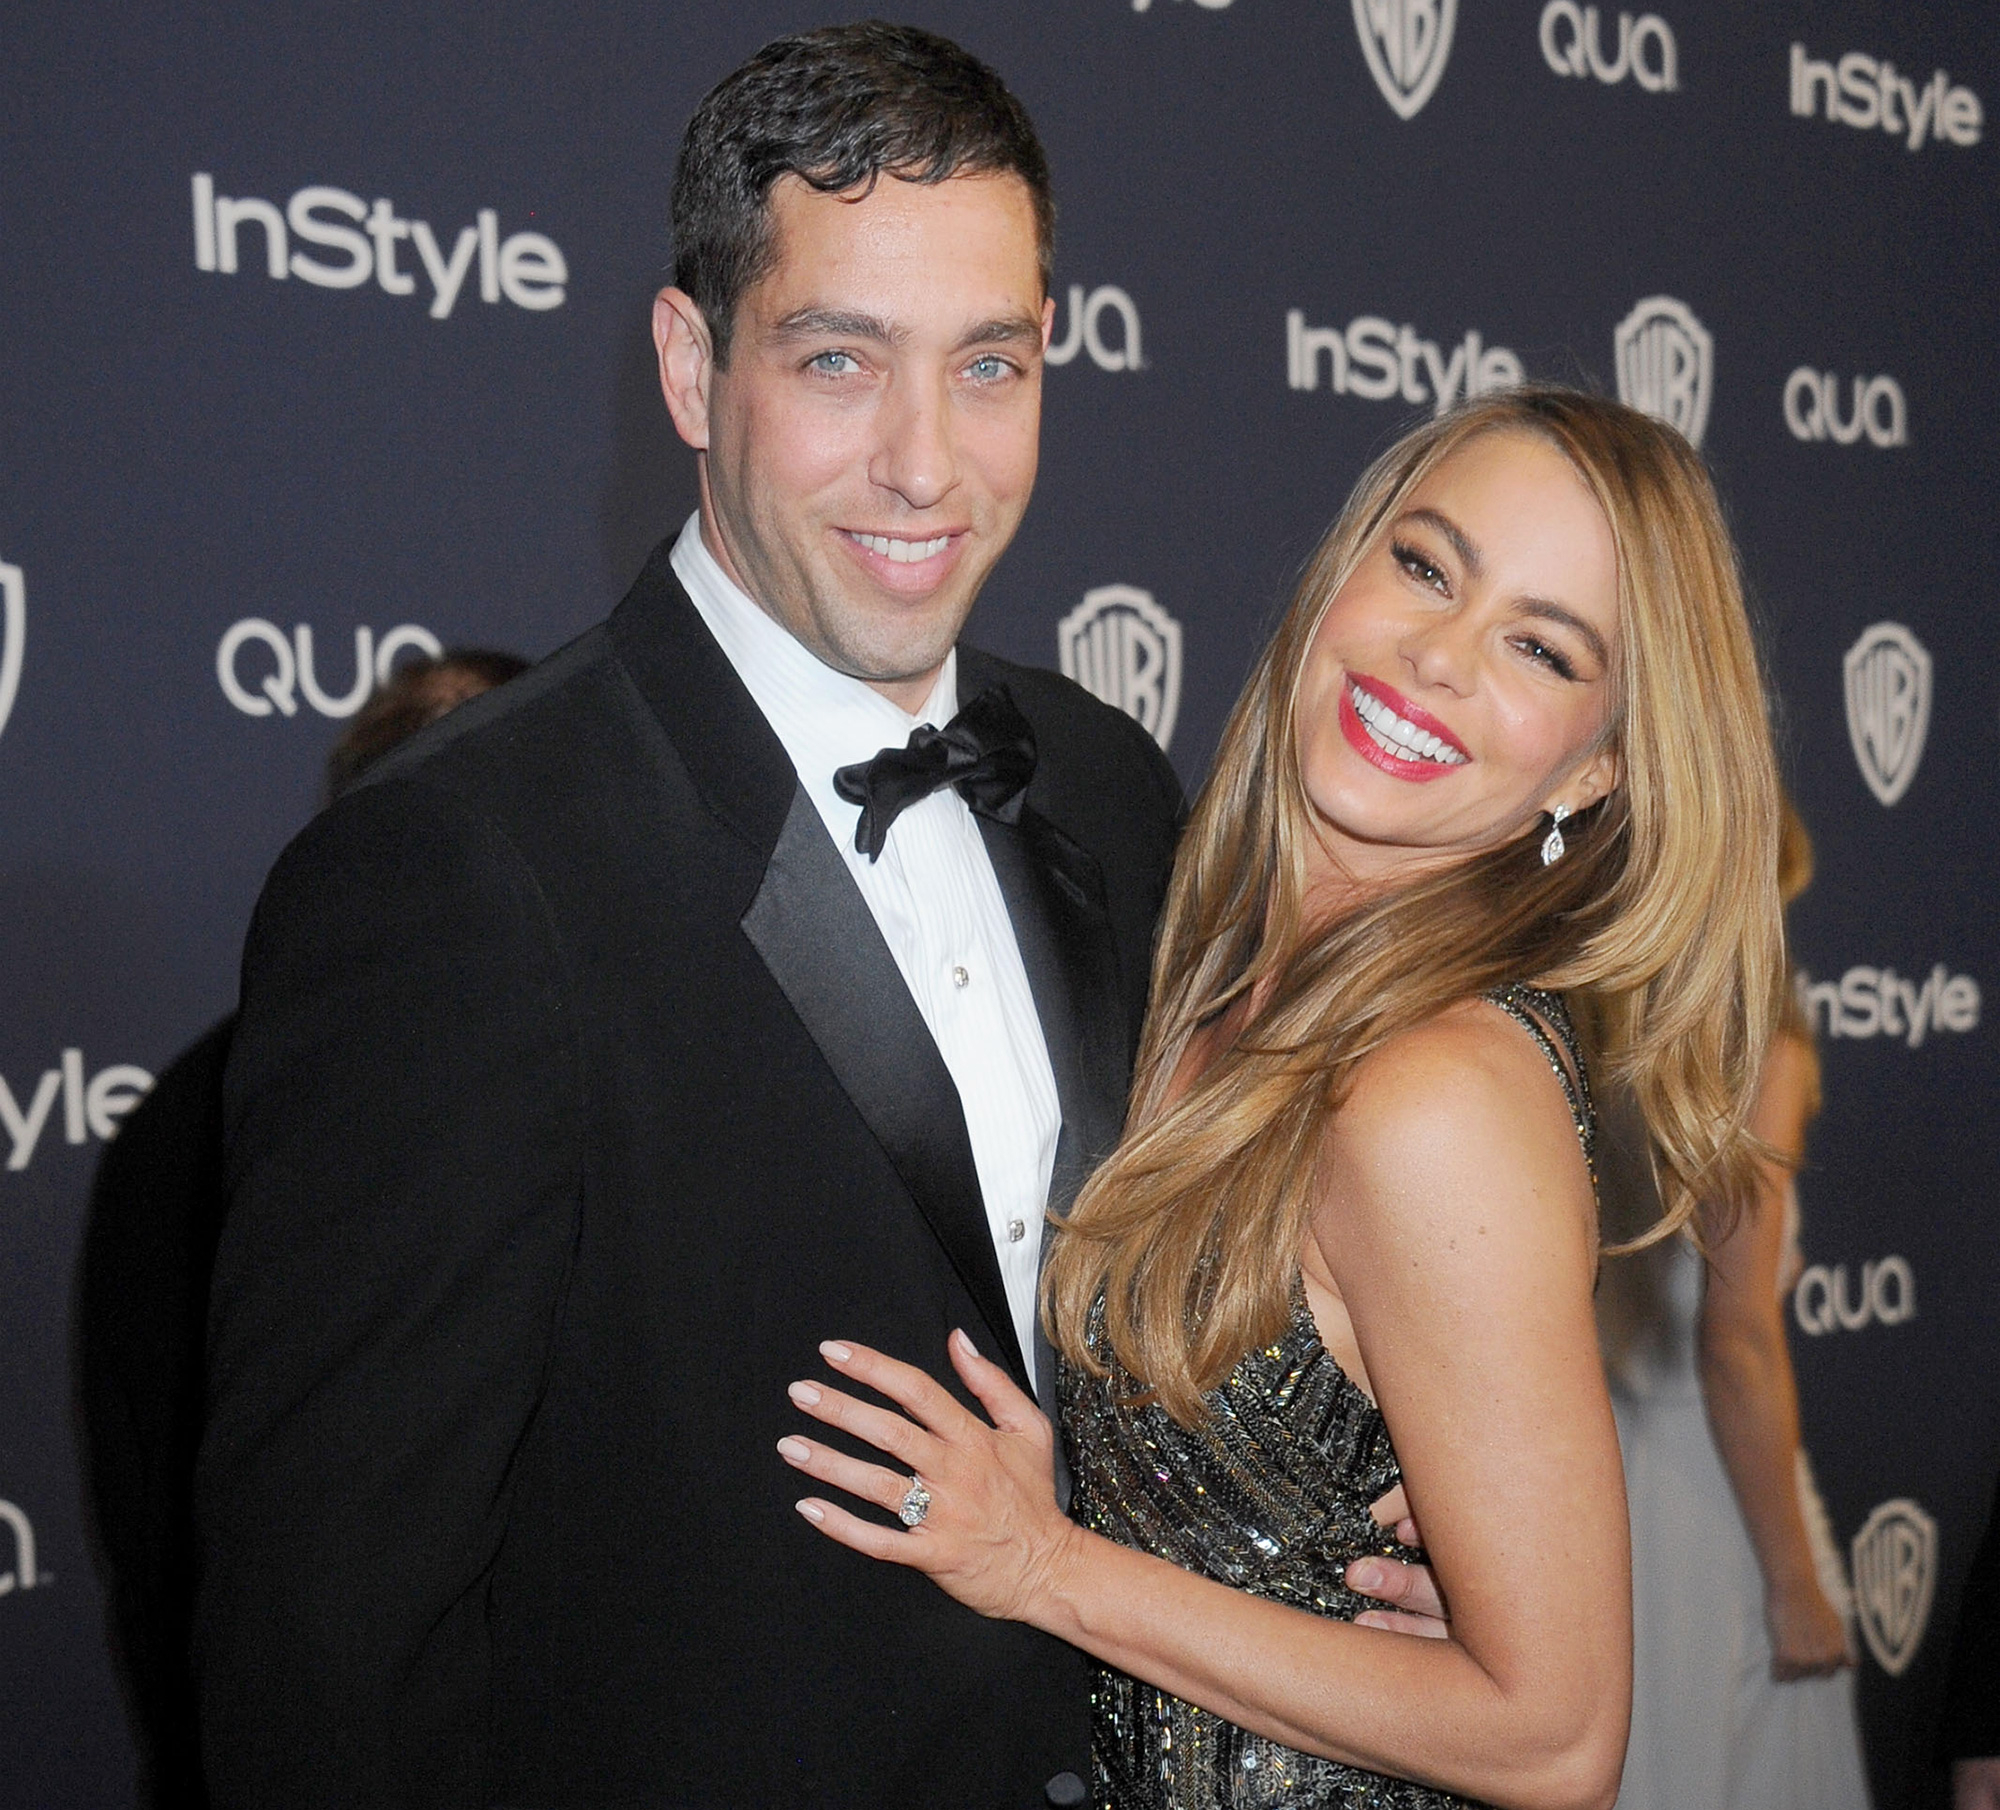 nick loeb, sofia vergara, instyle awards, embryo, legal case